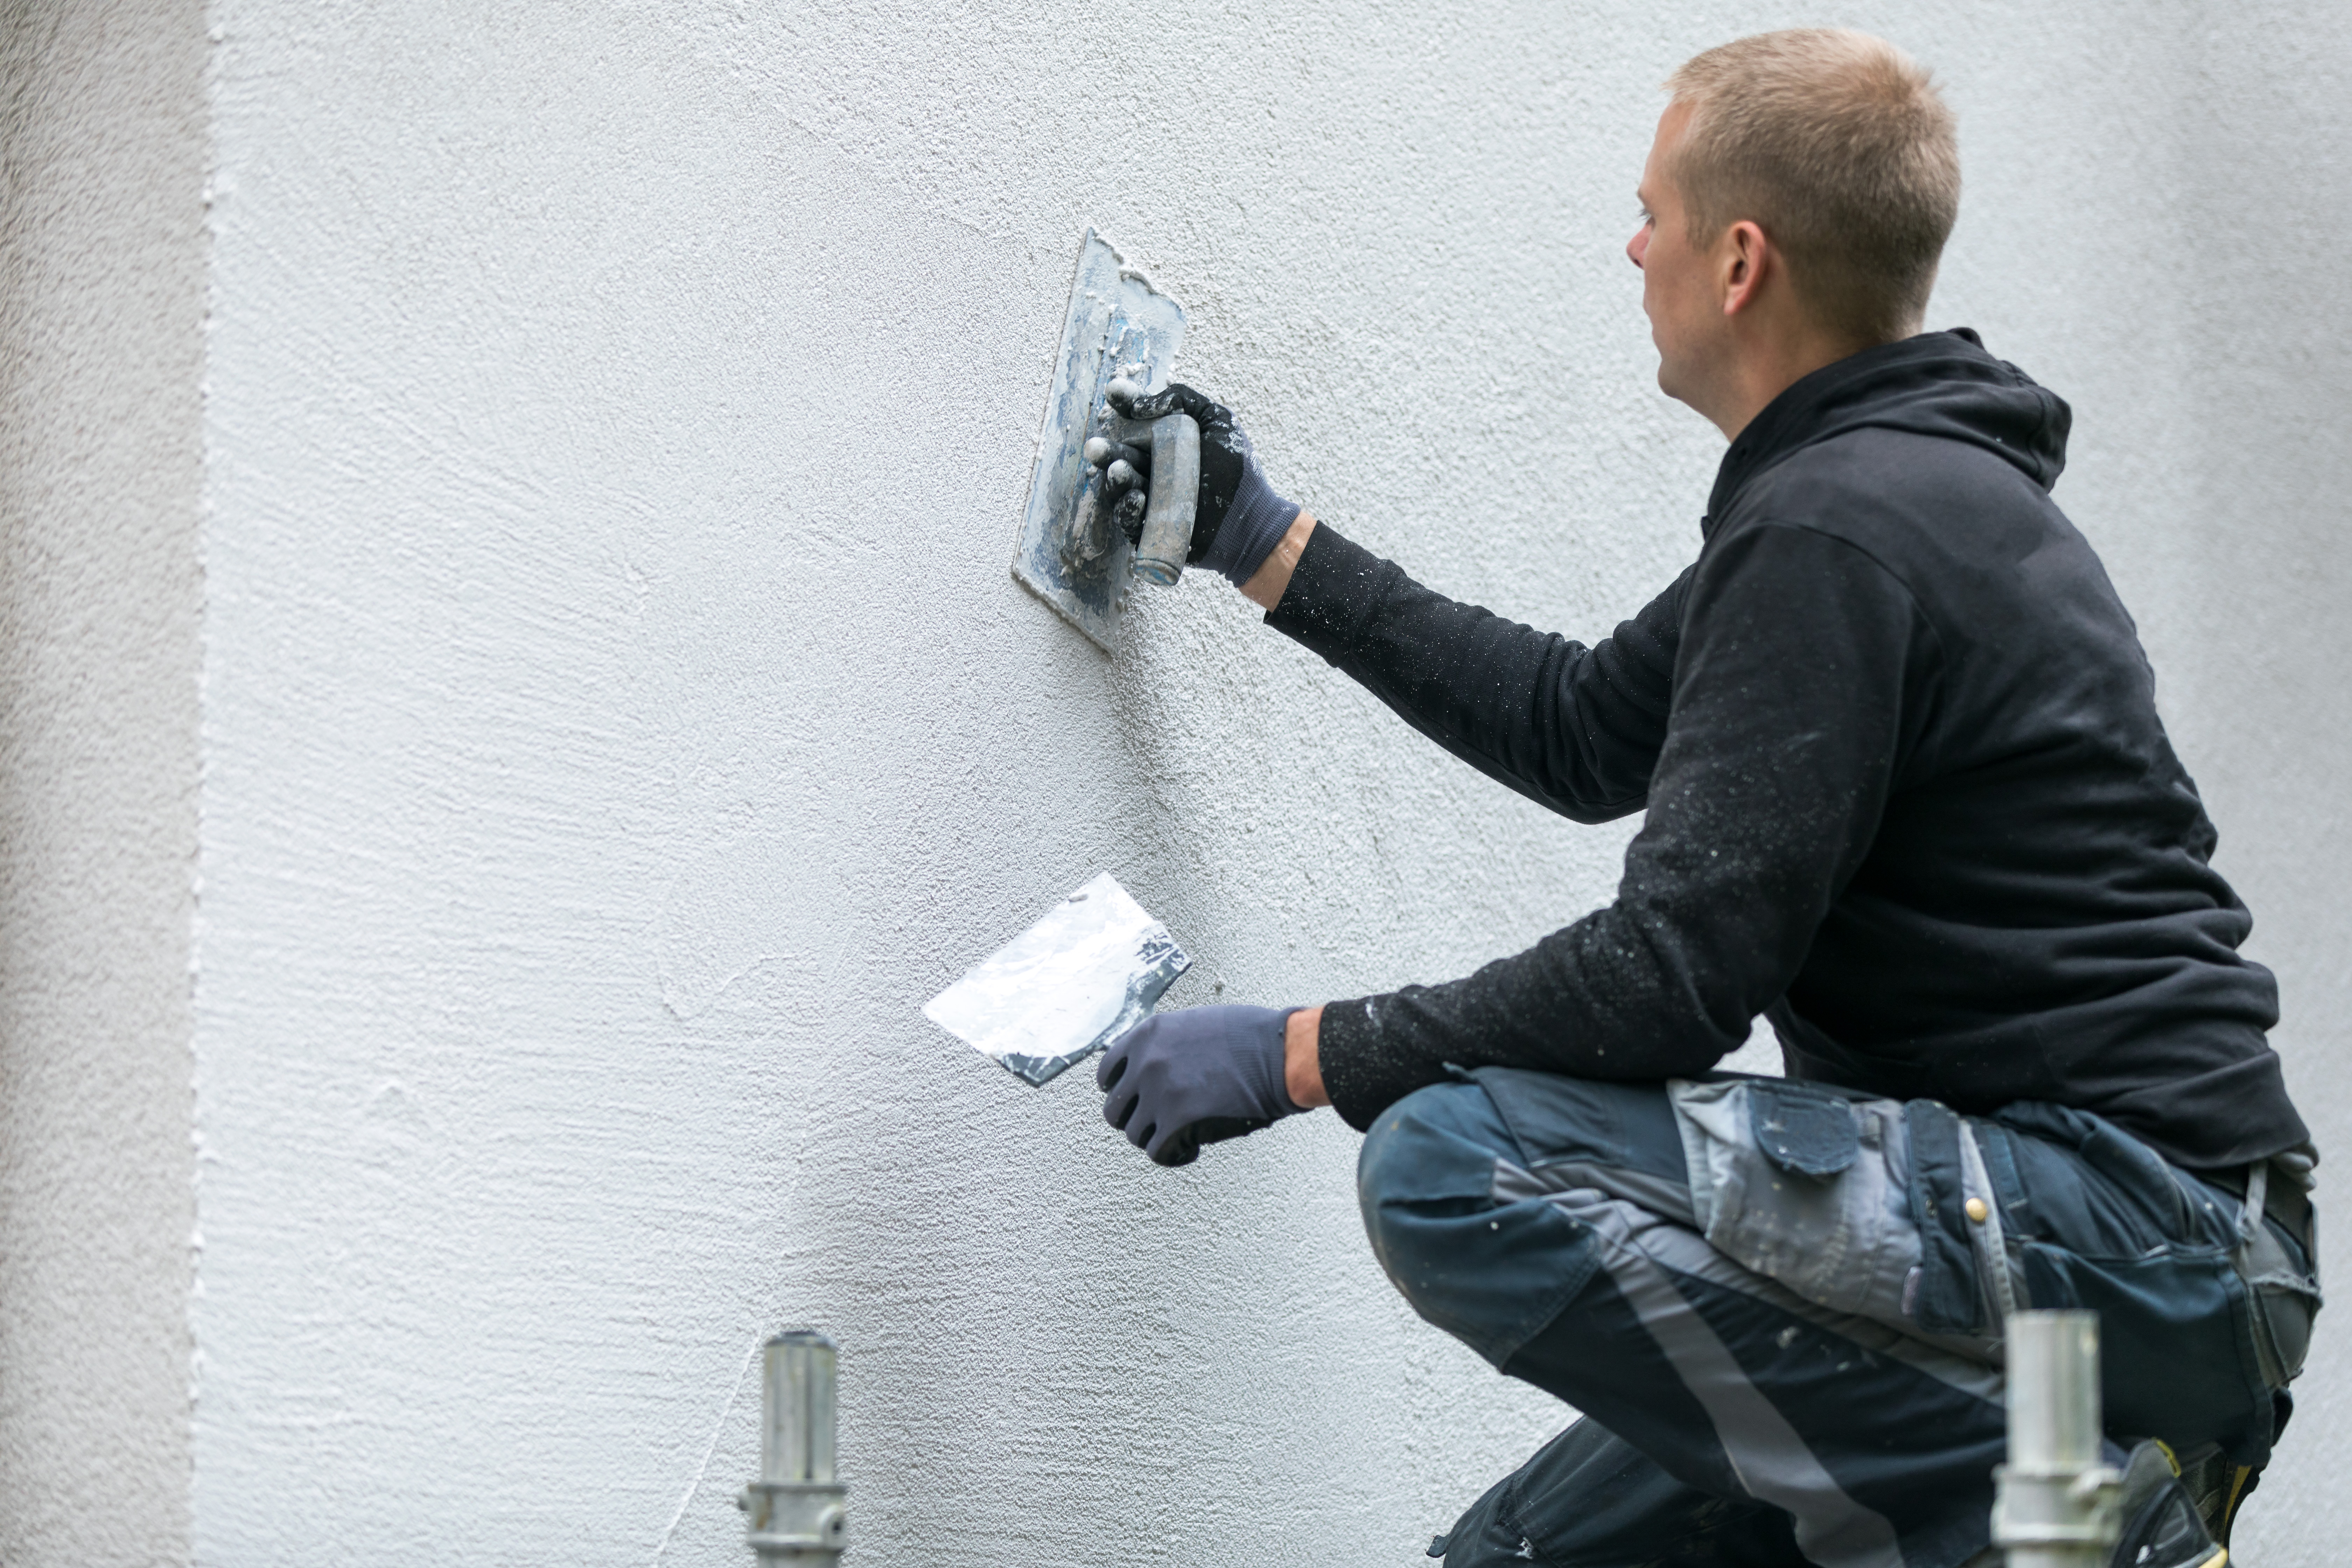 How to Install Siding Over Stucco Walls | Home Guides | SF Gate